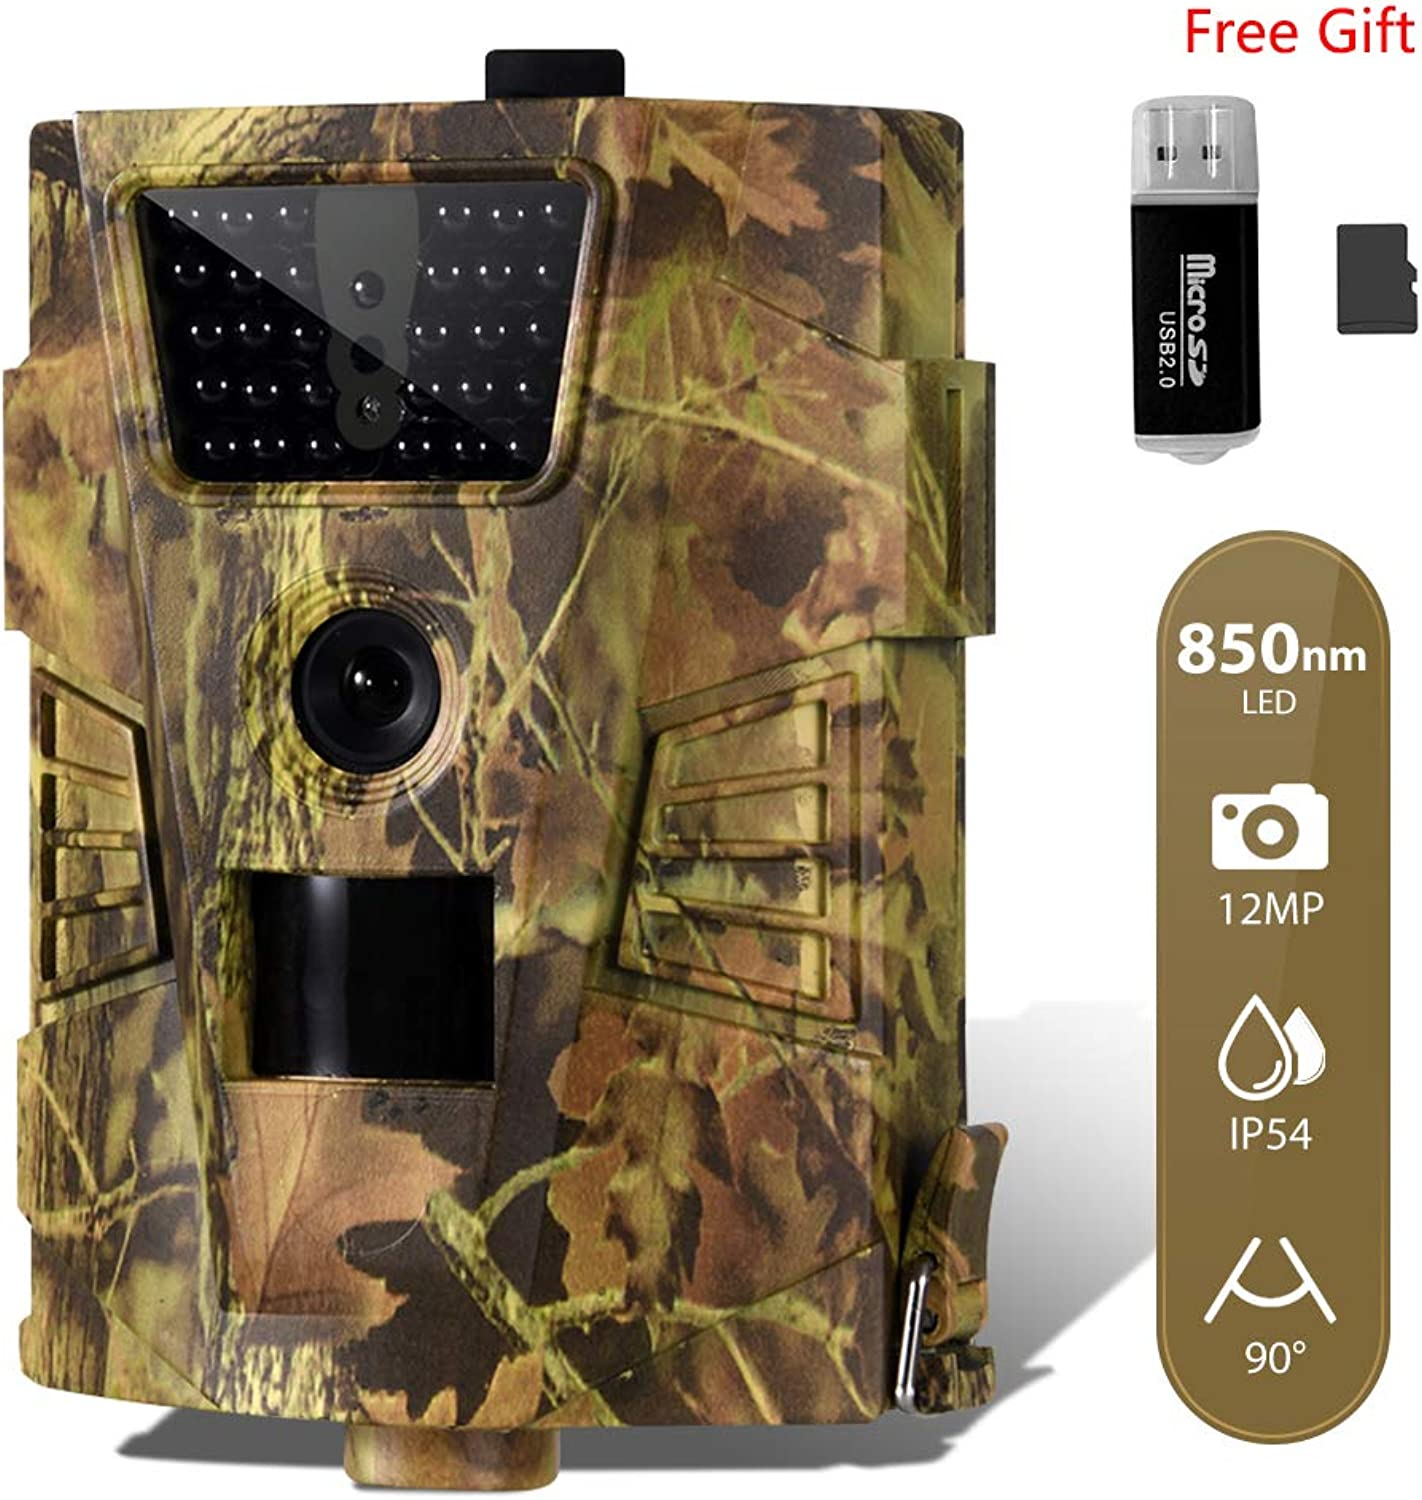 CAMVILD Trail Game Camera, Ultralight Wildlife Camera 1080P HD Hunting Camera with Motion Activated, No Glow Night Vision Up to 100ft, Tail Camera Support 32G